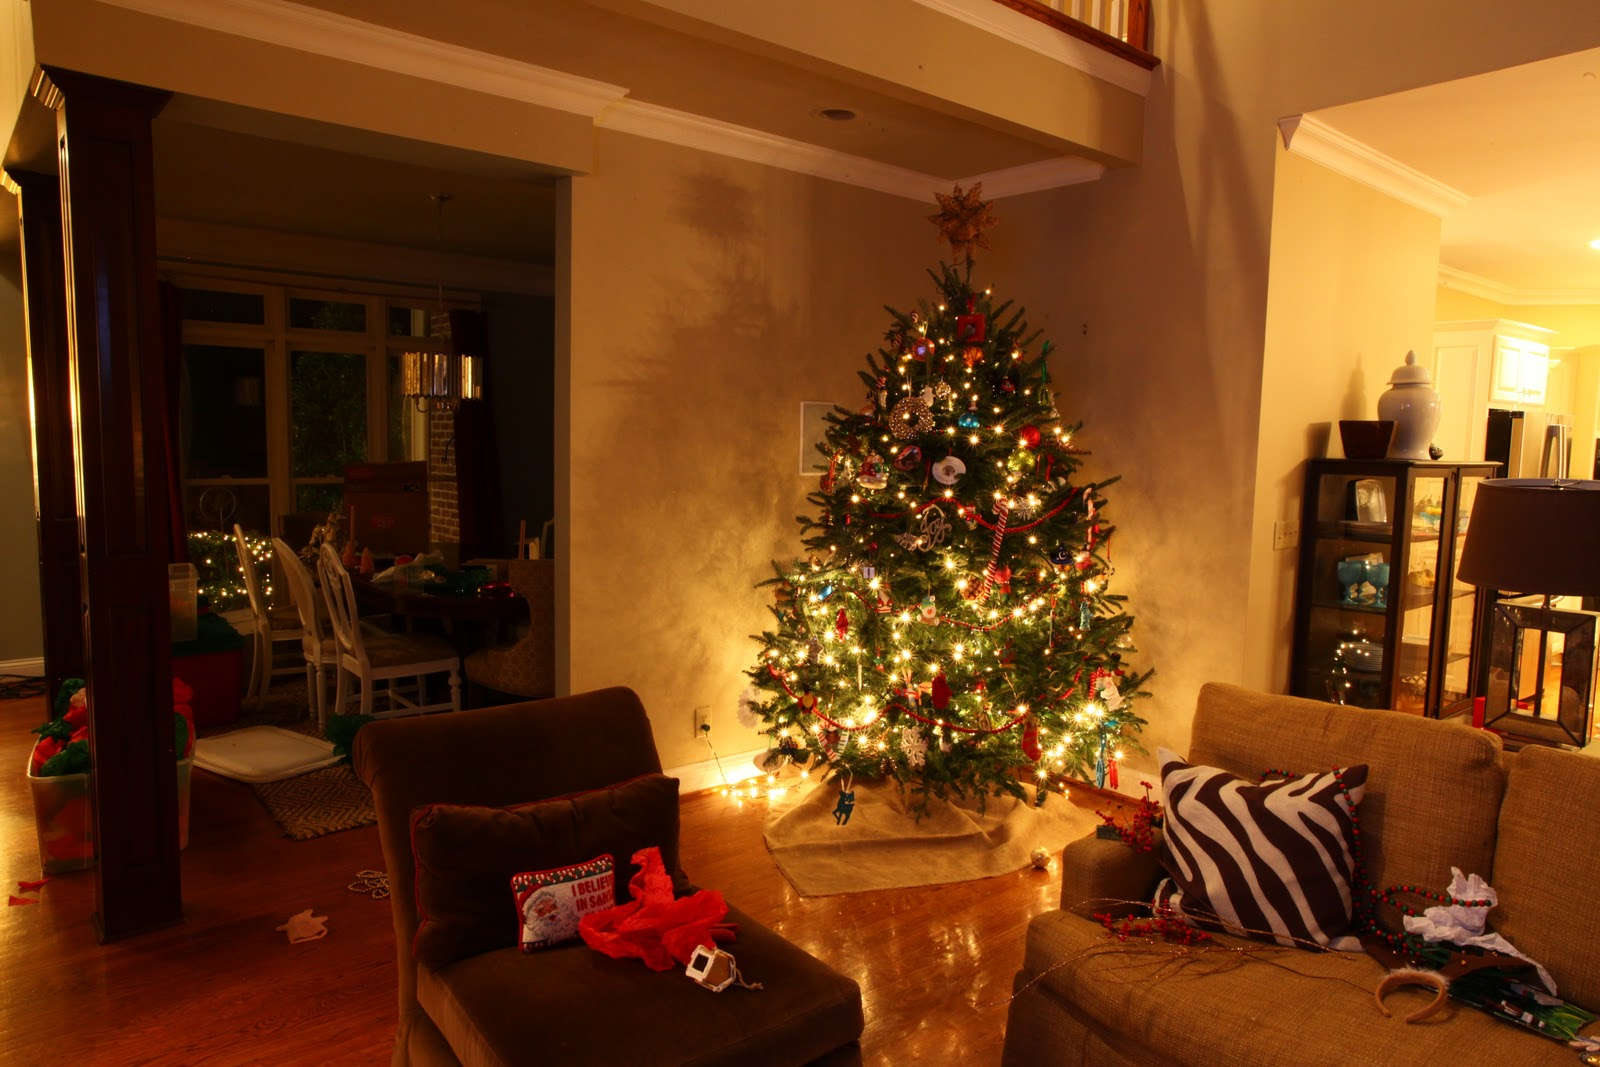 My Interior Life: How to Decorate a Christmas Tree in 22 Seconds